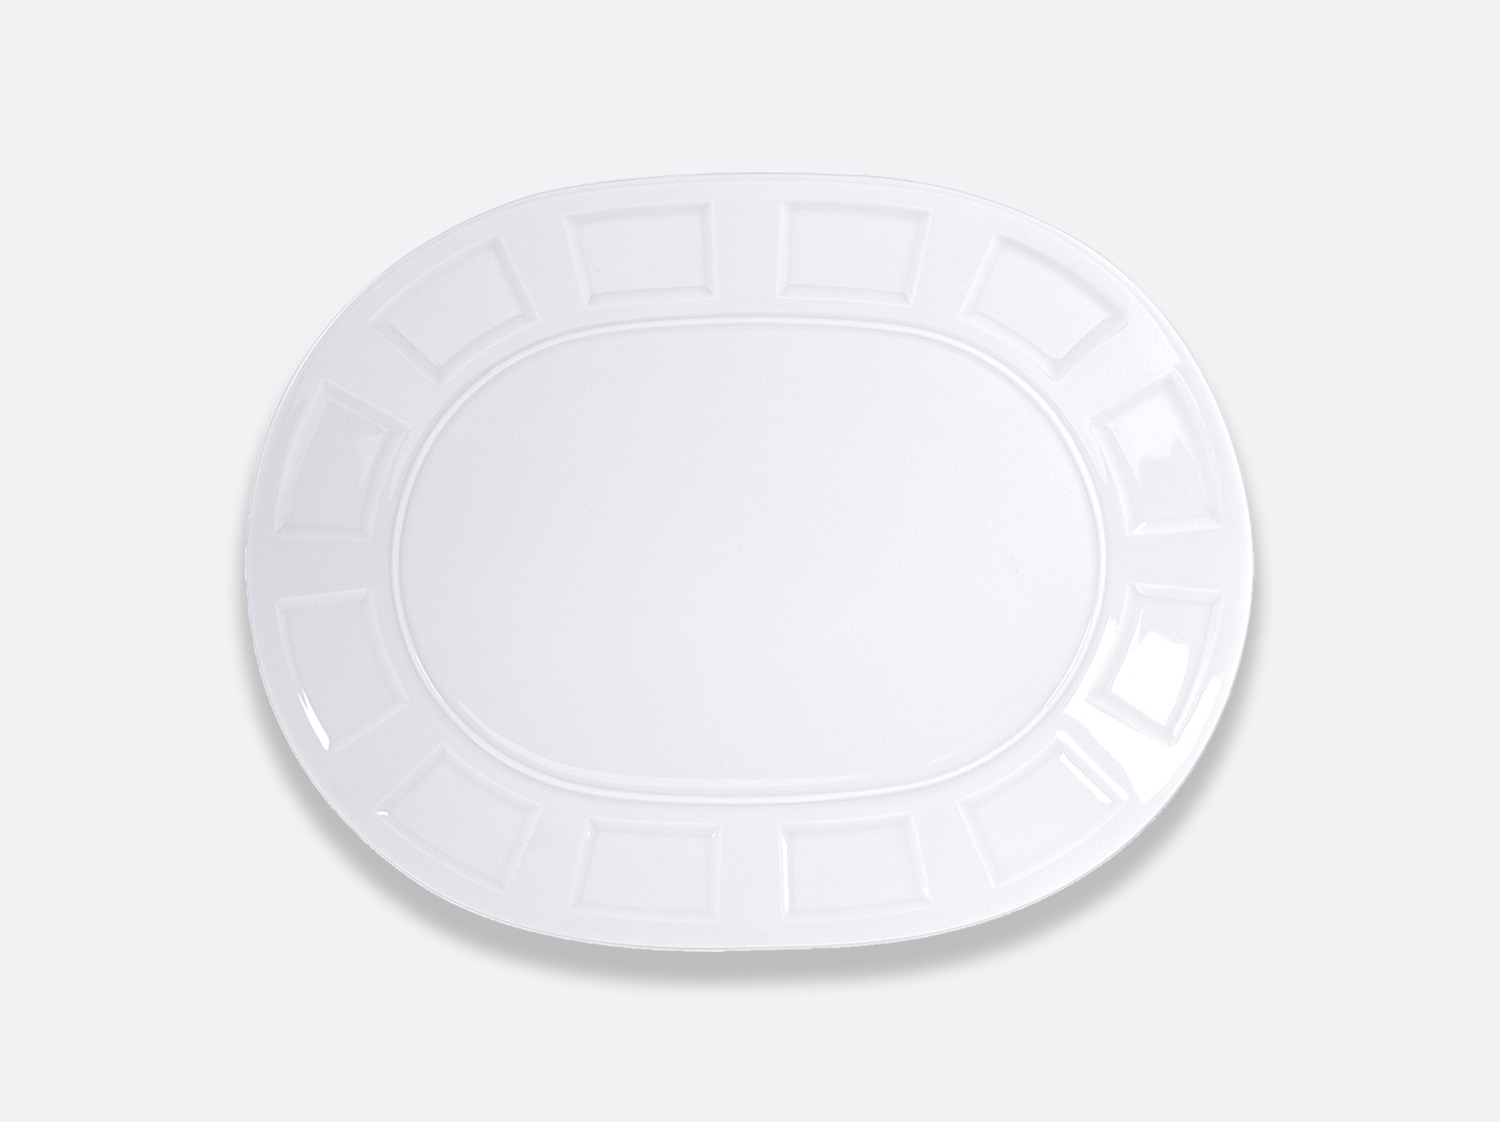 Plat ovale 38 cm en porcelaine de la collection Naxos Bernardaud